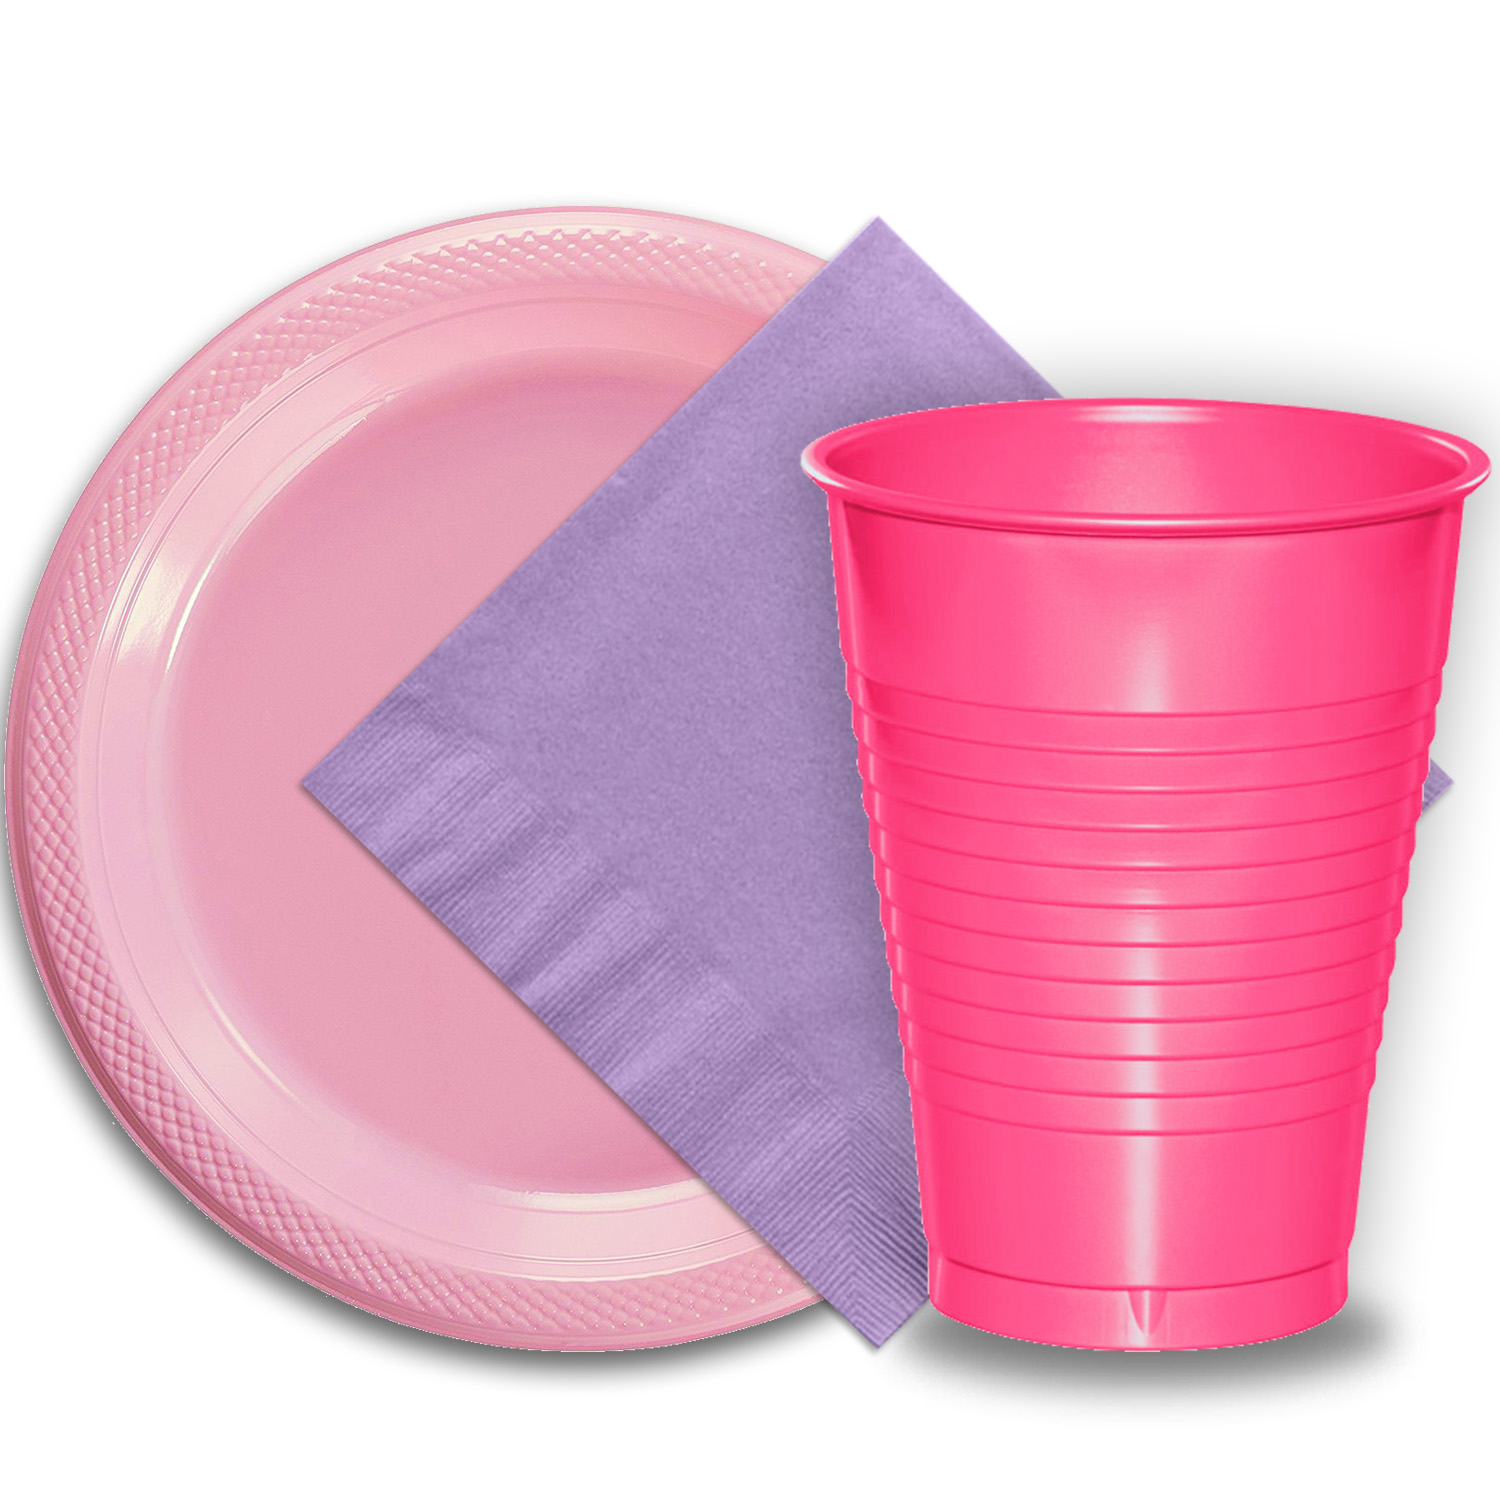 """50 Pink Plastic Plates (9""""), 50 Hot Pink Plastic Cups (12 oz.), and 50 Lavender Paper Napkins, Dazzelling Colored Disposable Party Supplies Tableware Set for Fifty Guests."""